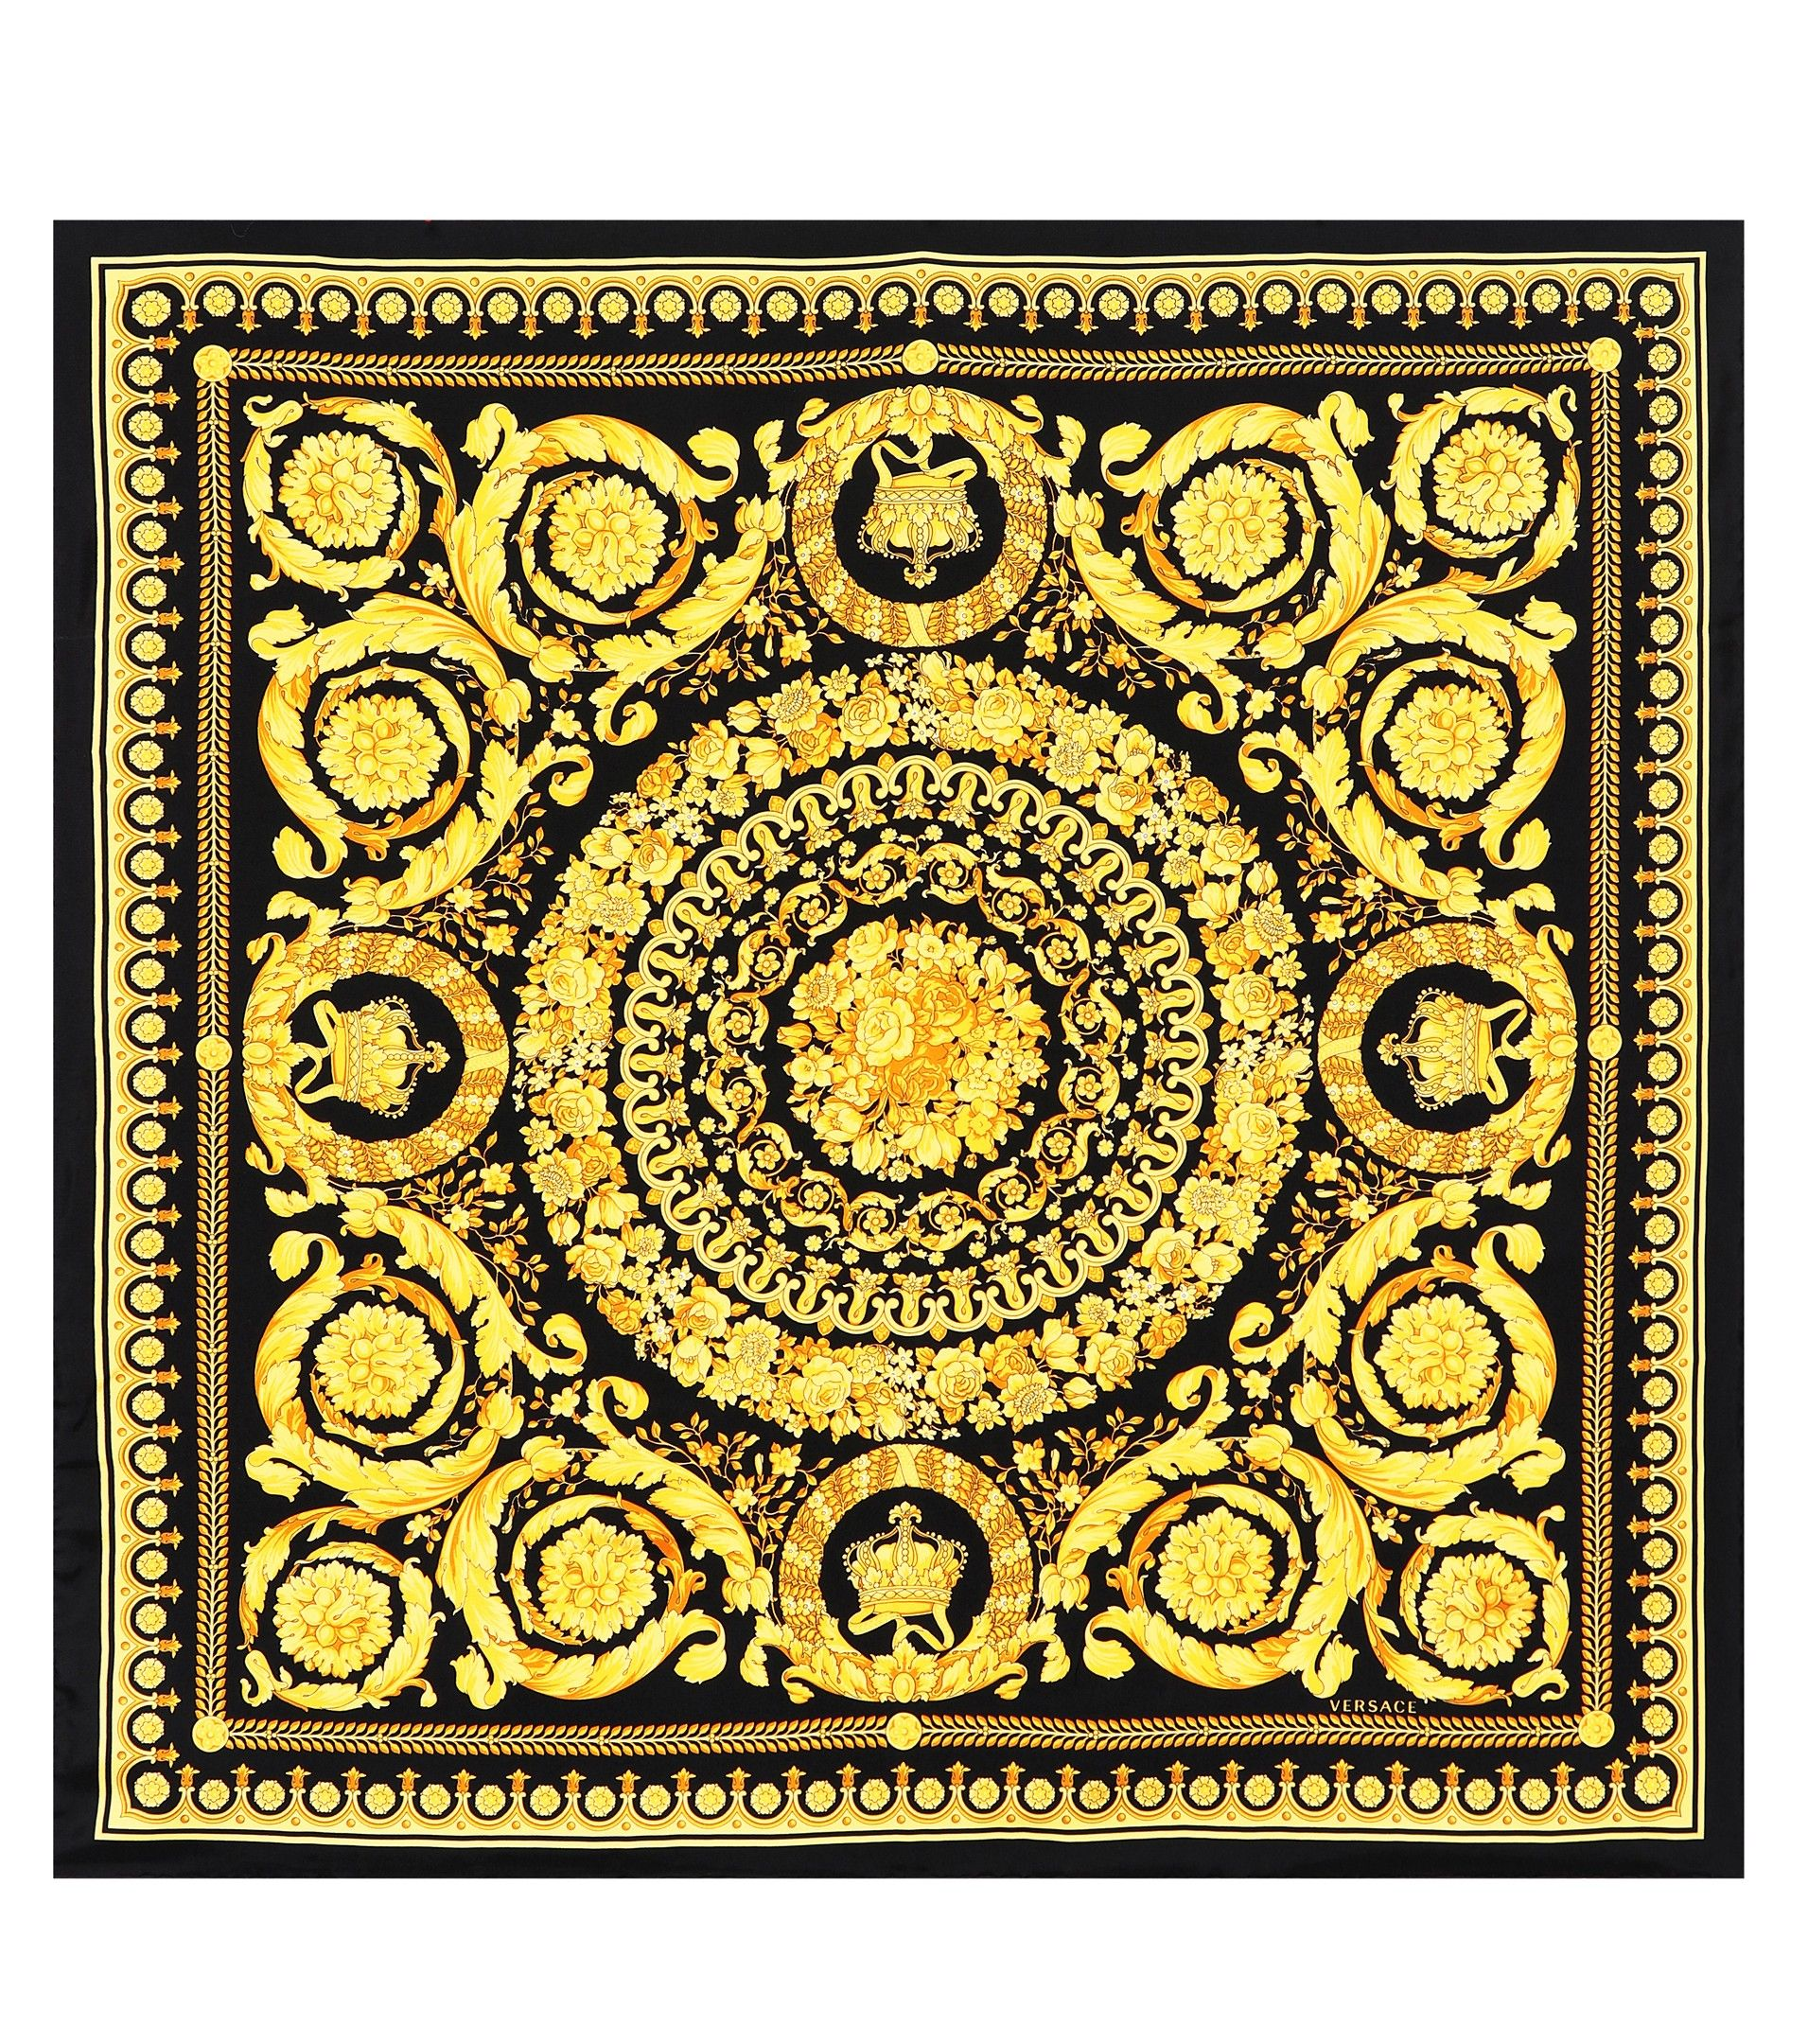 e8815d60b8 Baroque SS92 printed silk scarf | All about Graphic Design | Versace ...